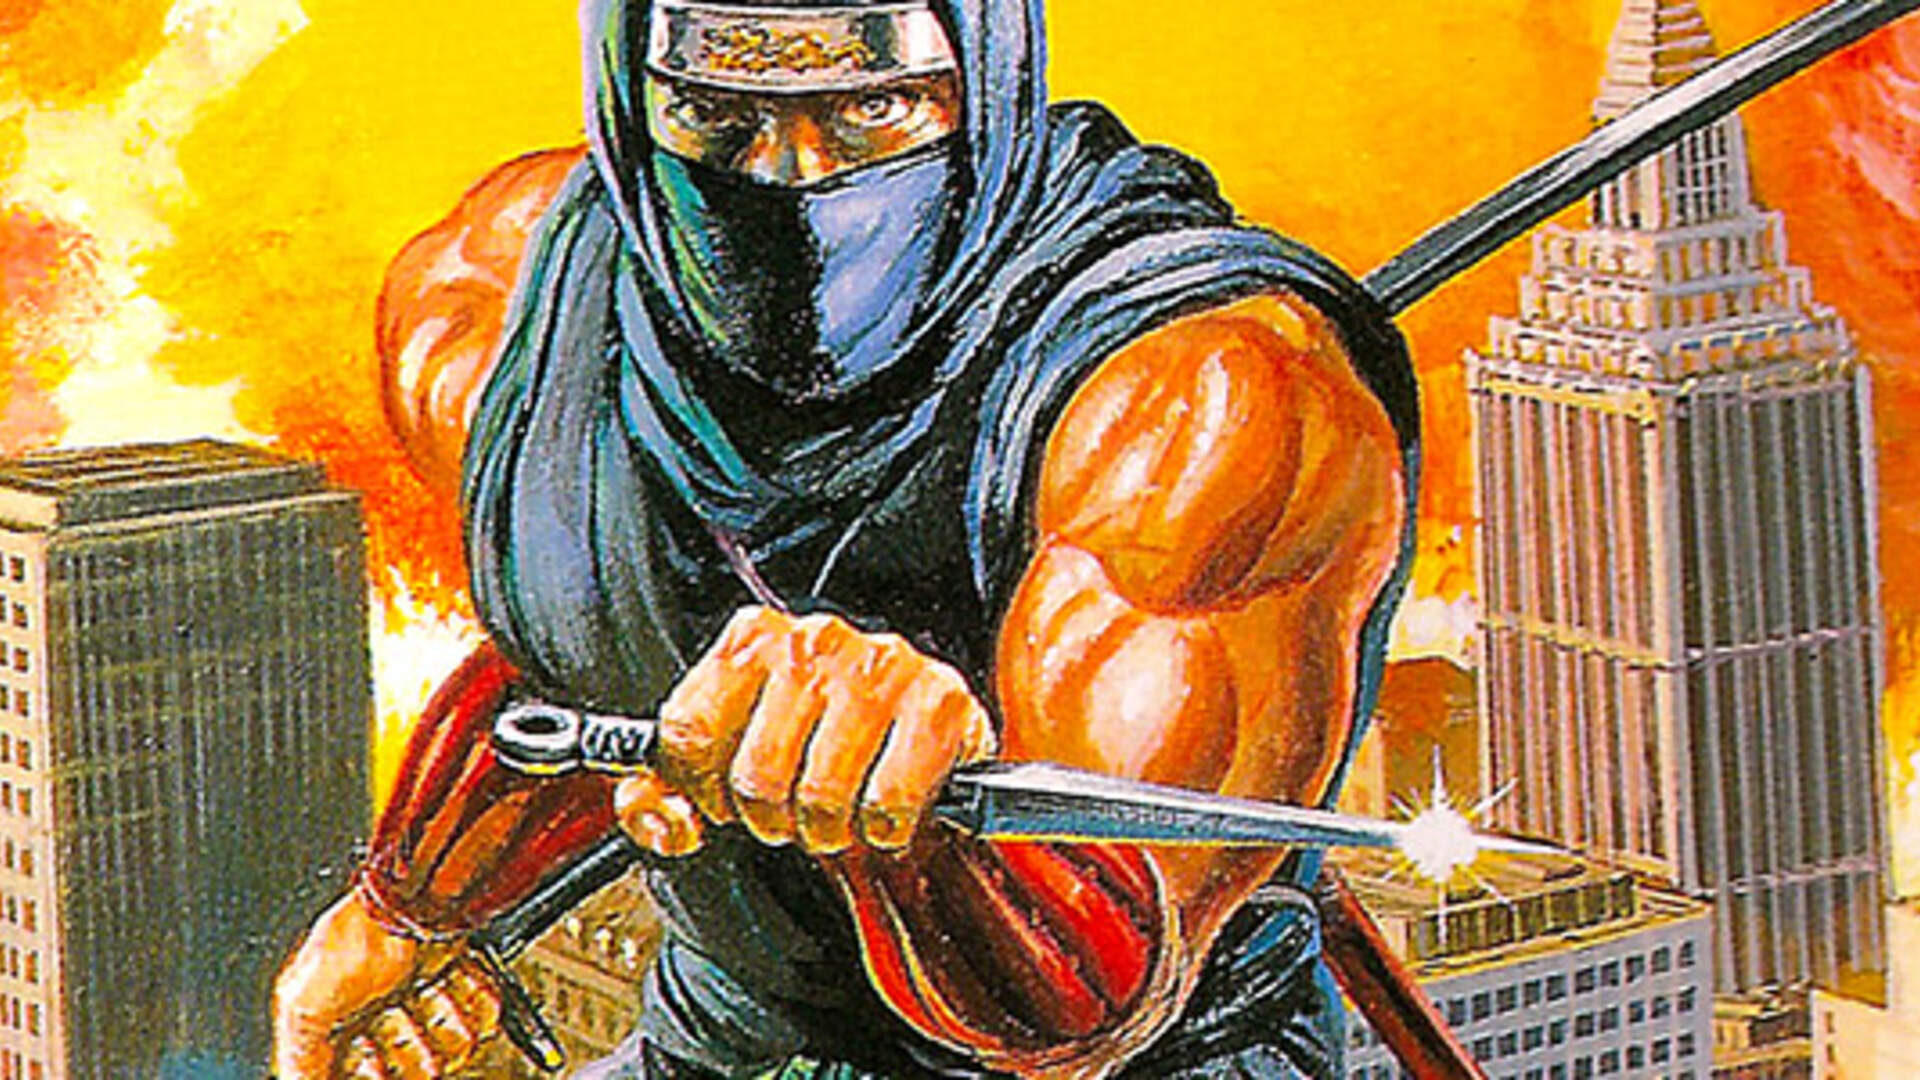 Stream: Kat Makes Her Ninja Gaiden Run at 4pm PT/7pm ET.